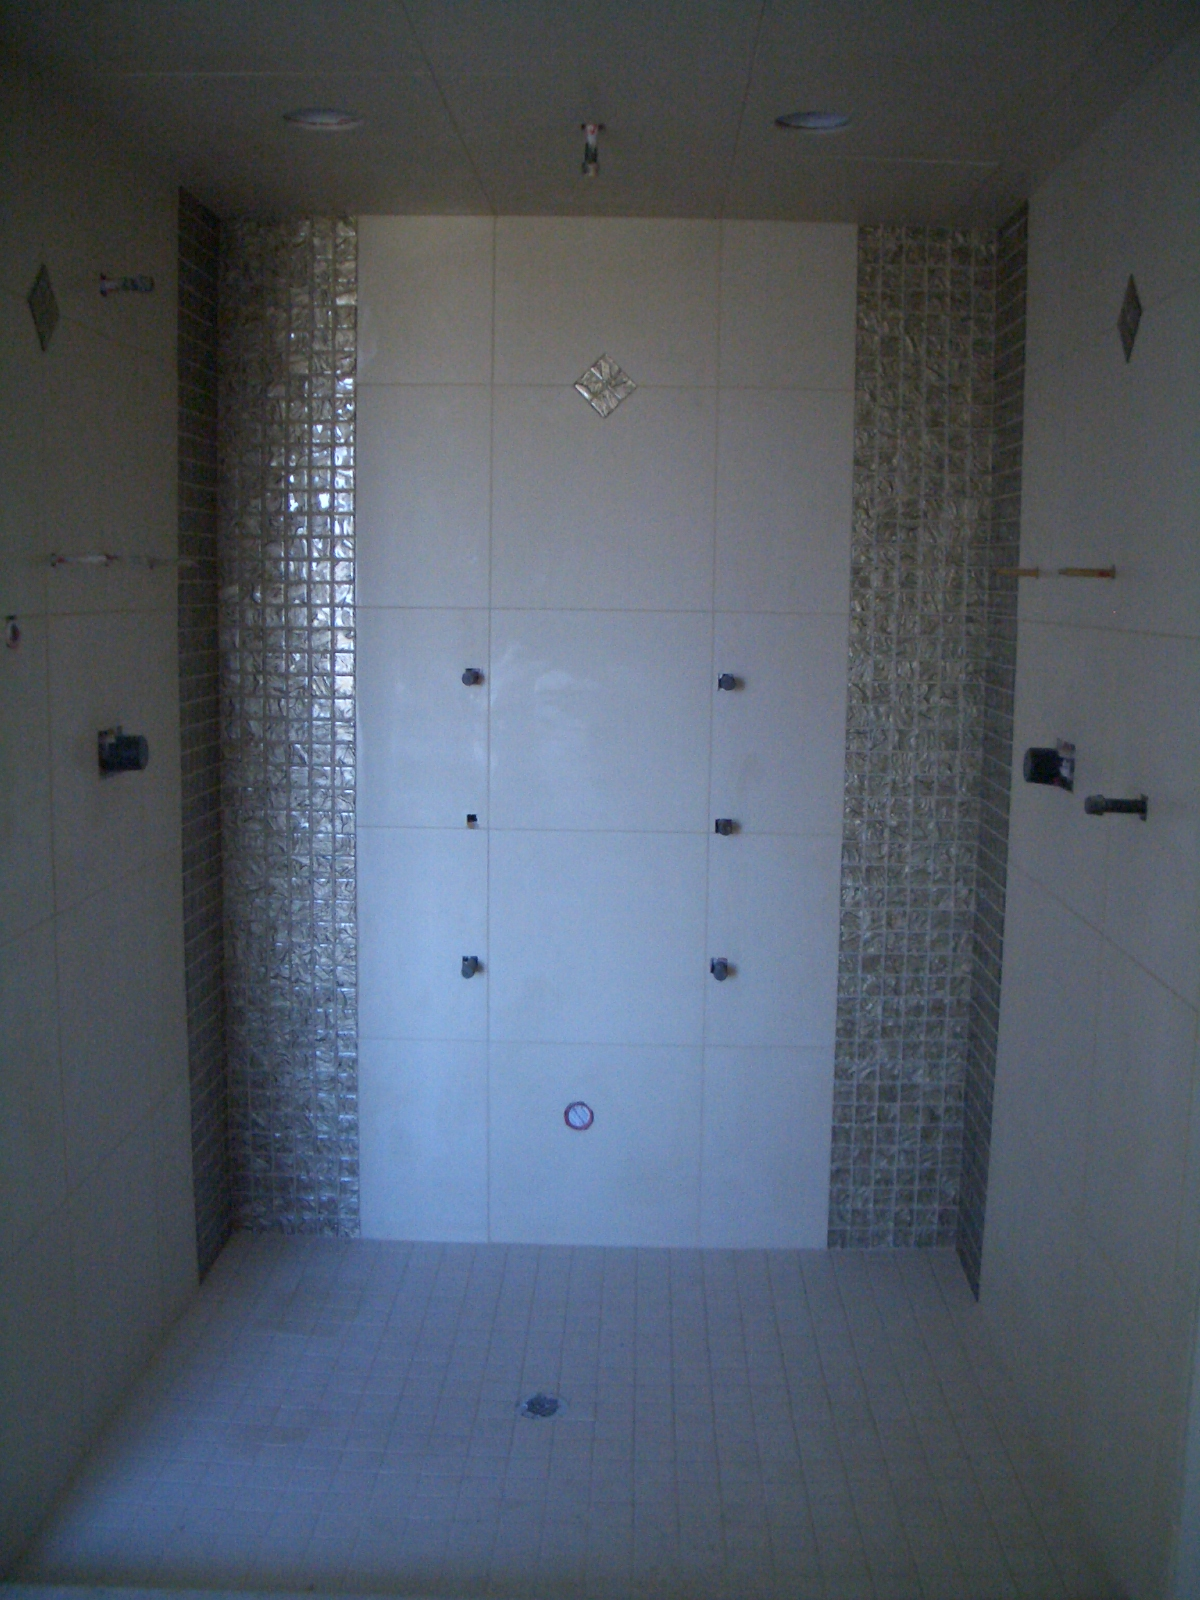 Glass Tiles as Accents in Tile Installations